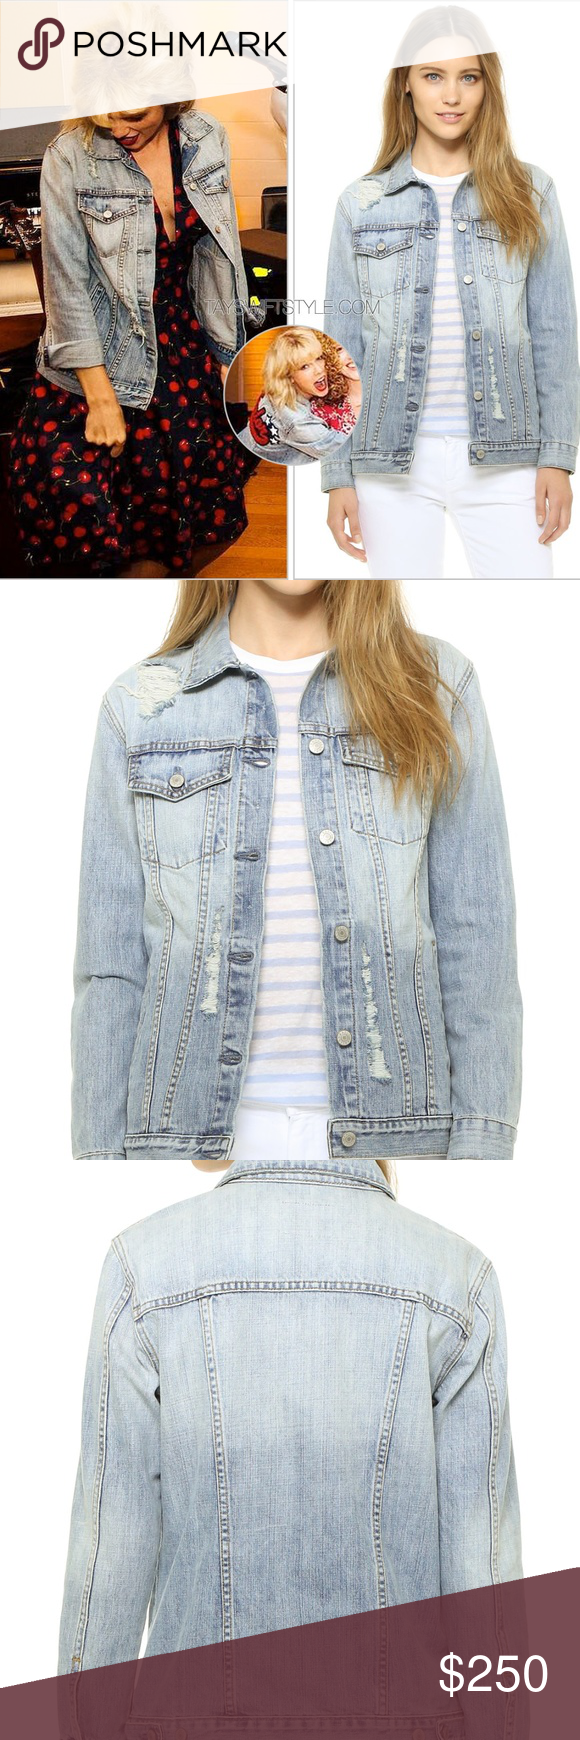 Nwot Rails Knox Denim Jacket Aso Tay Swift Small Up For Sale Is A New Without Tags Rails Knox Faded Wash Denim Jacket Si Denim Fashion Clothes Design Fashion [ 1740 x 580 Pixel ]